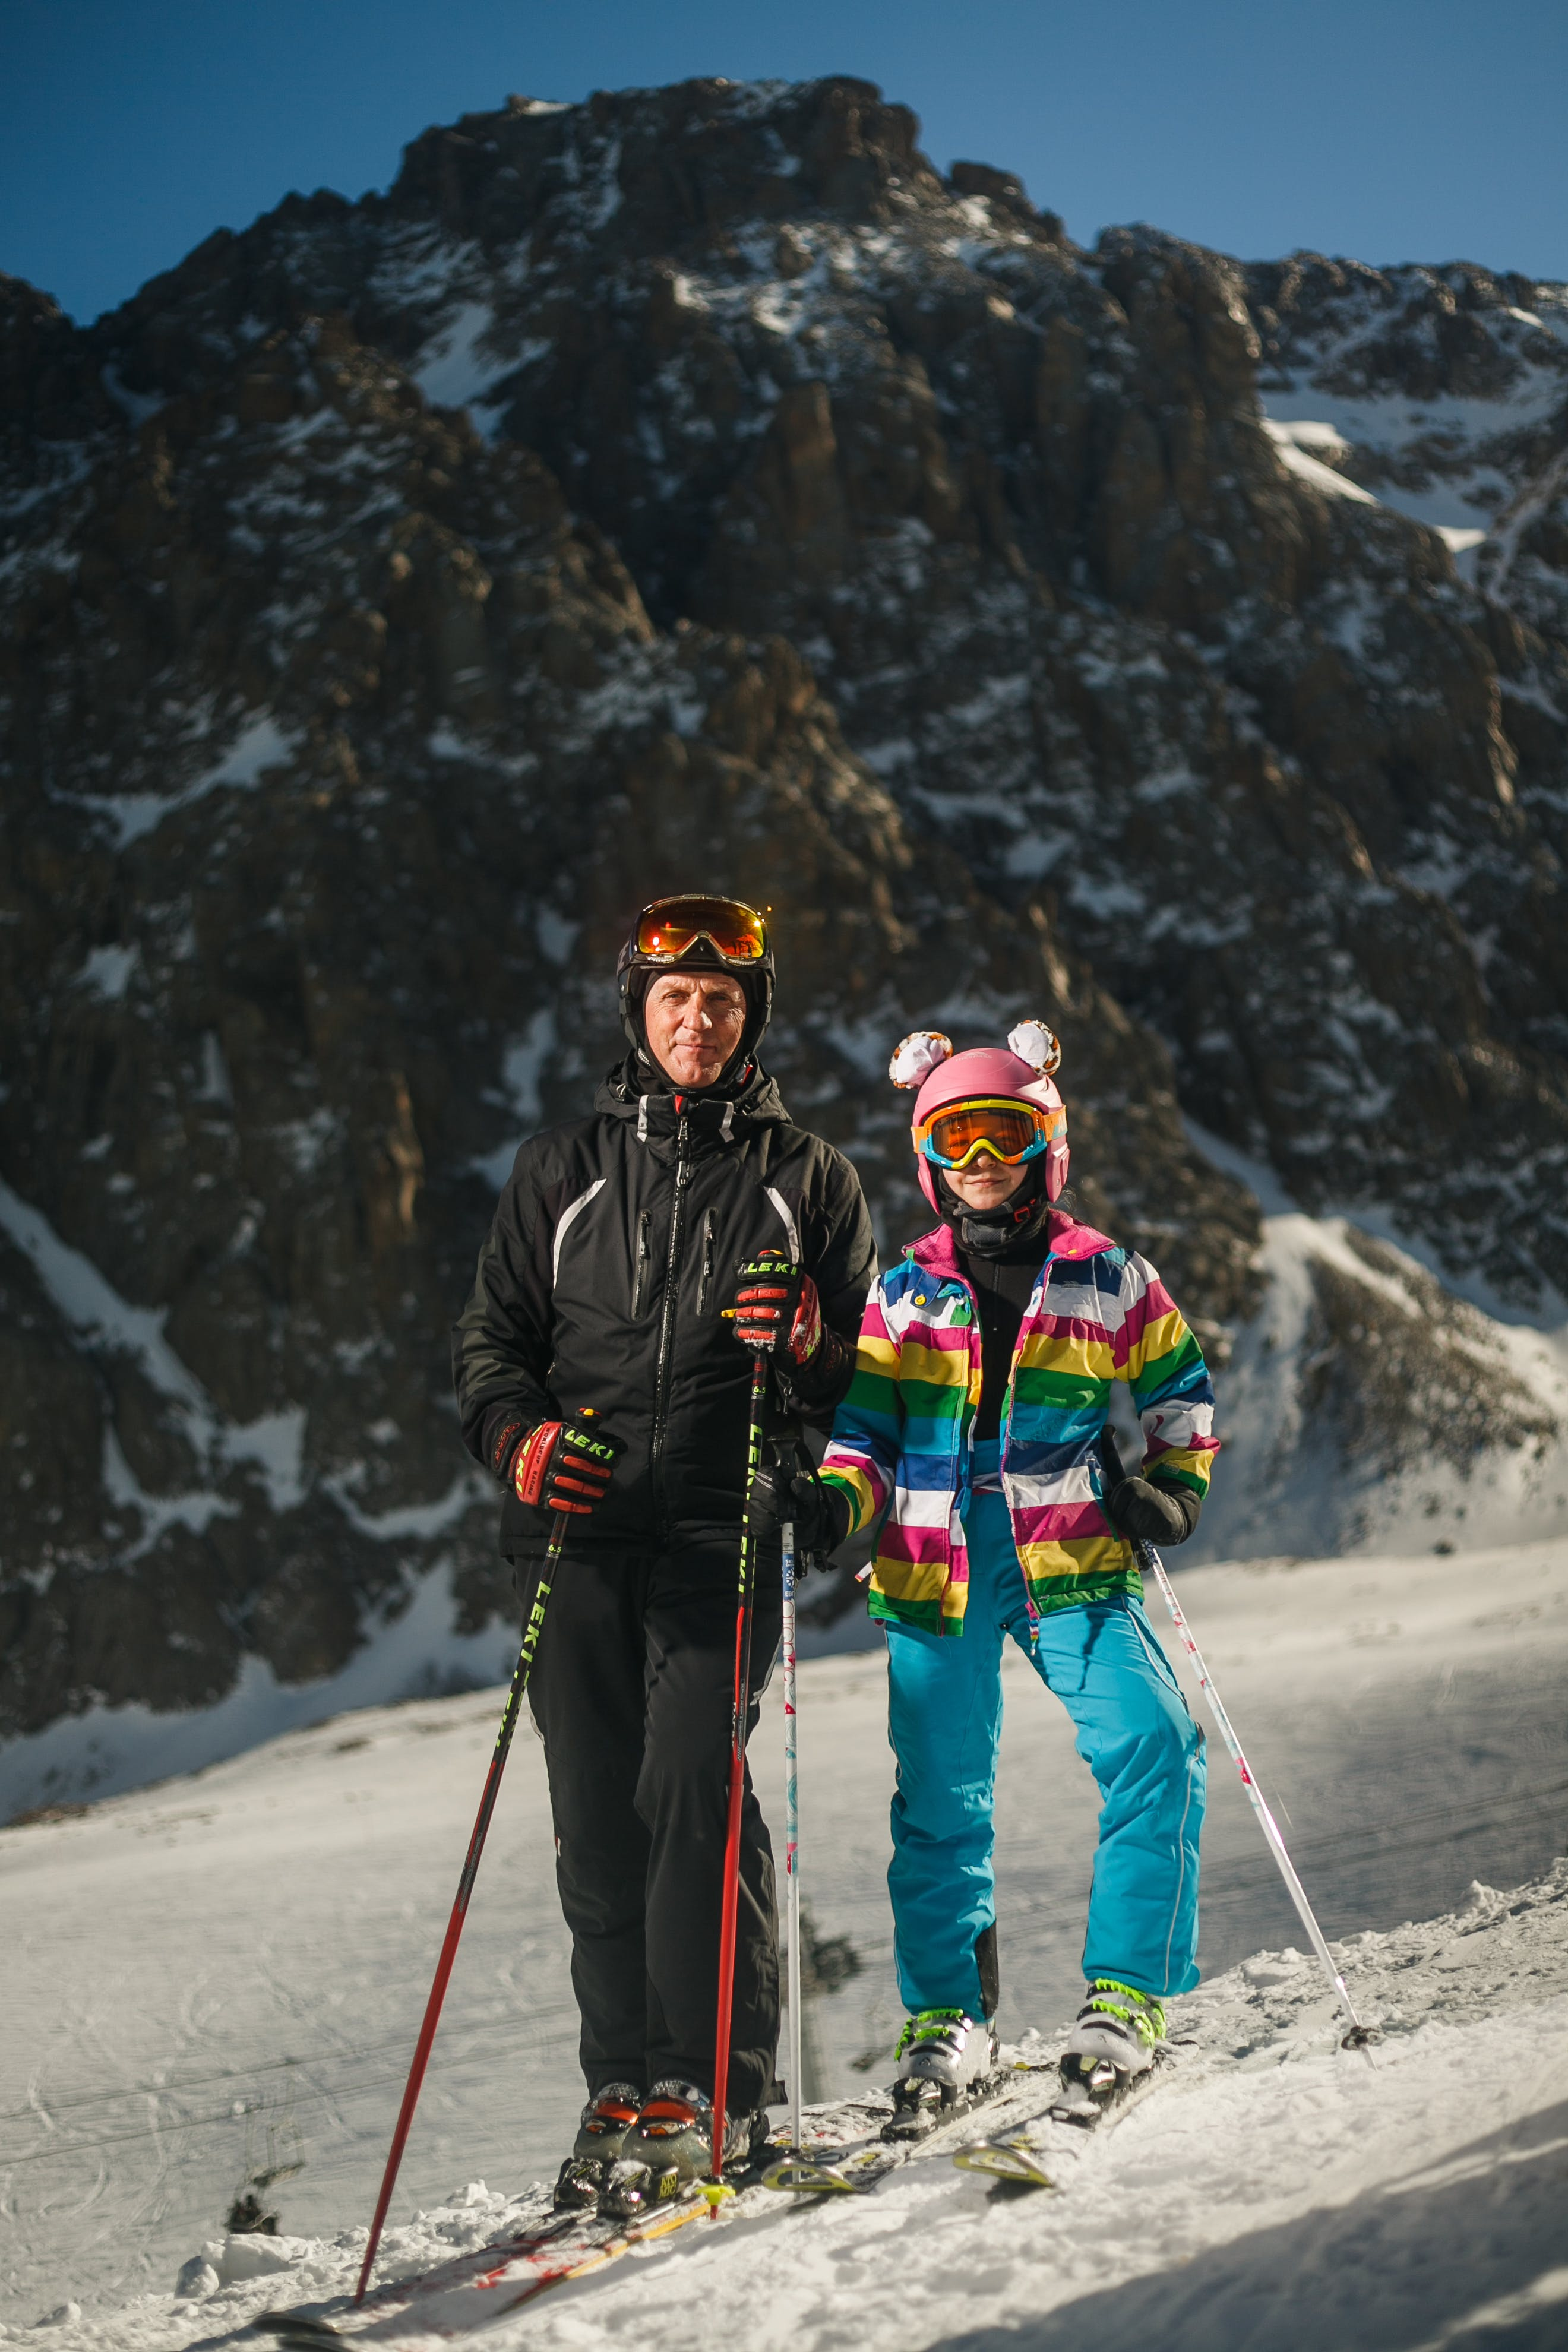 Man and Woman Wearing Snow Ski Suit and Snow Ski With Poles during Snow